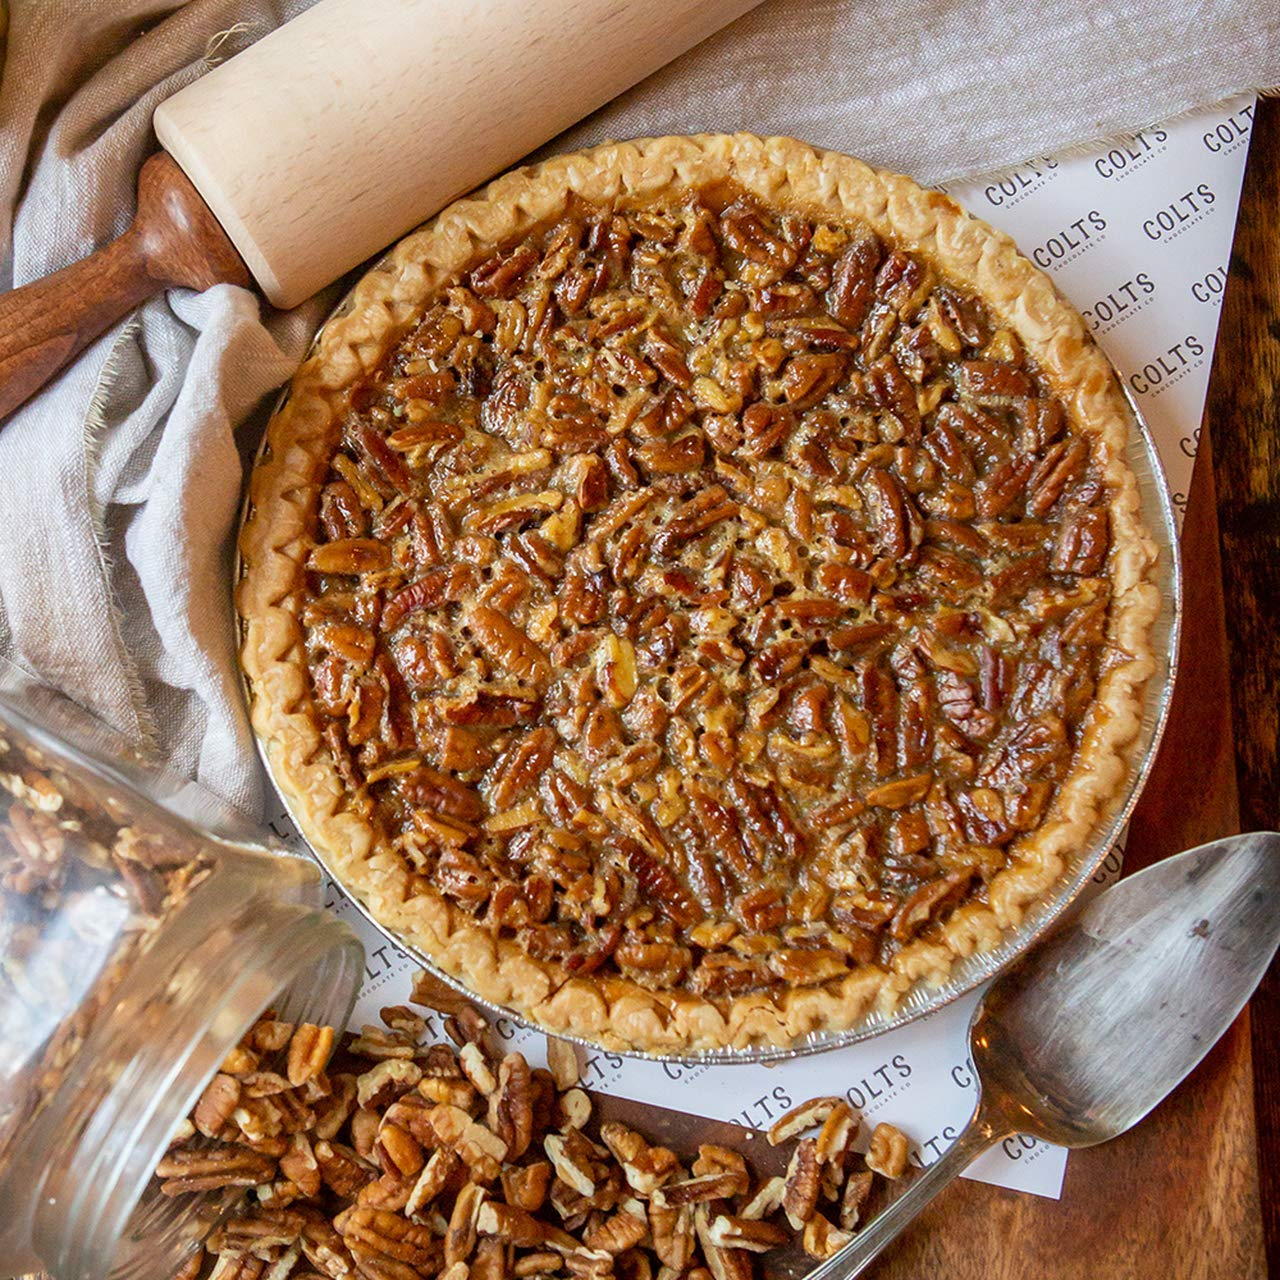 Colts Chocolates White Chocolate Pecan Pie Made In Nashville 10 Inches Amazon Com Grocery Gourmet Food